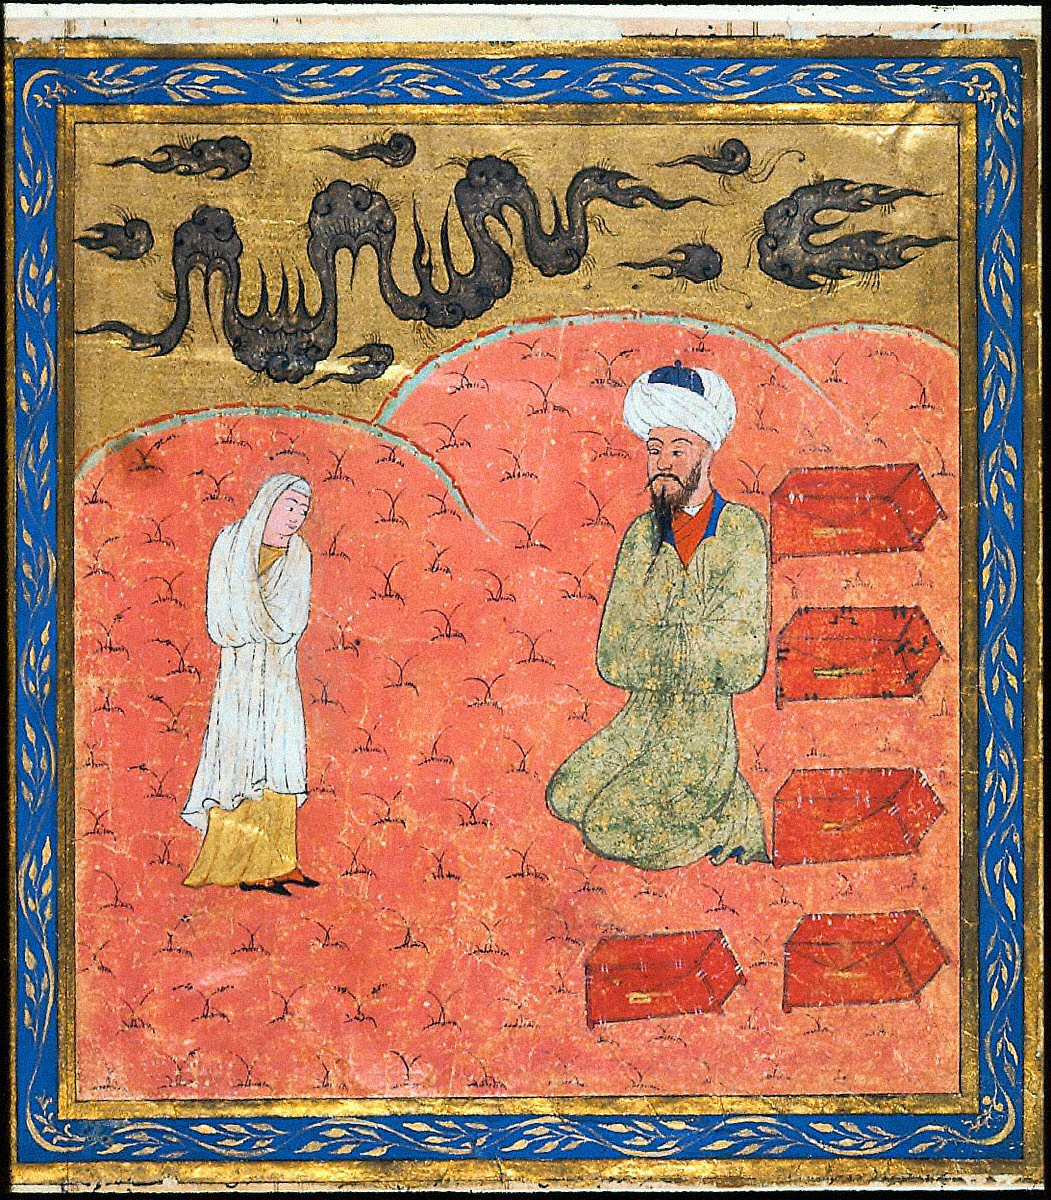 Manizha Converses with Rustam, who is disguised as a Merchant